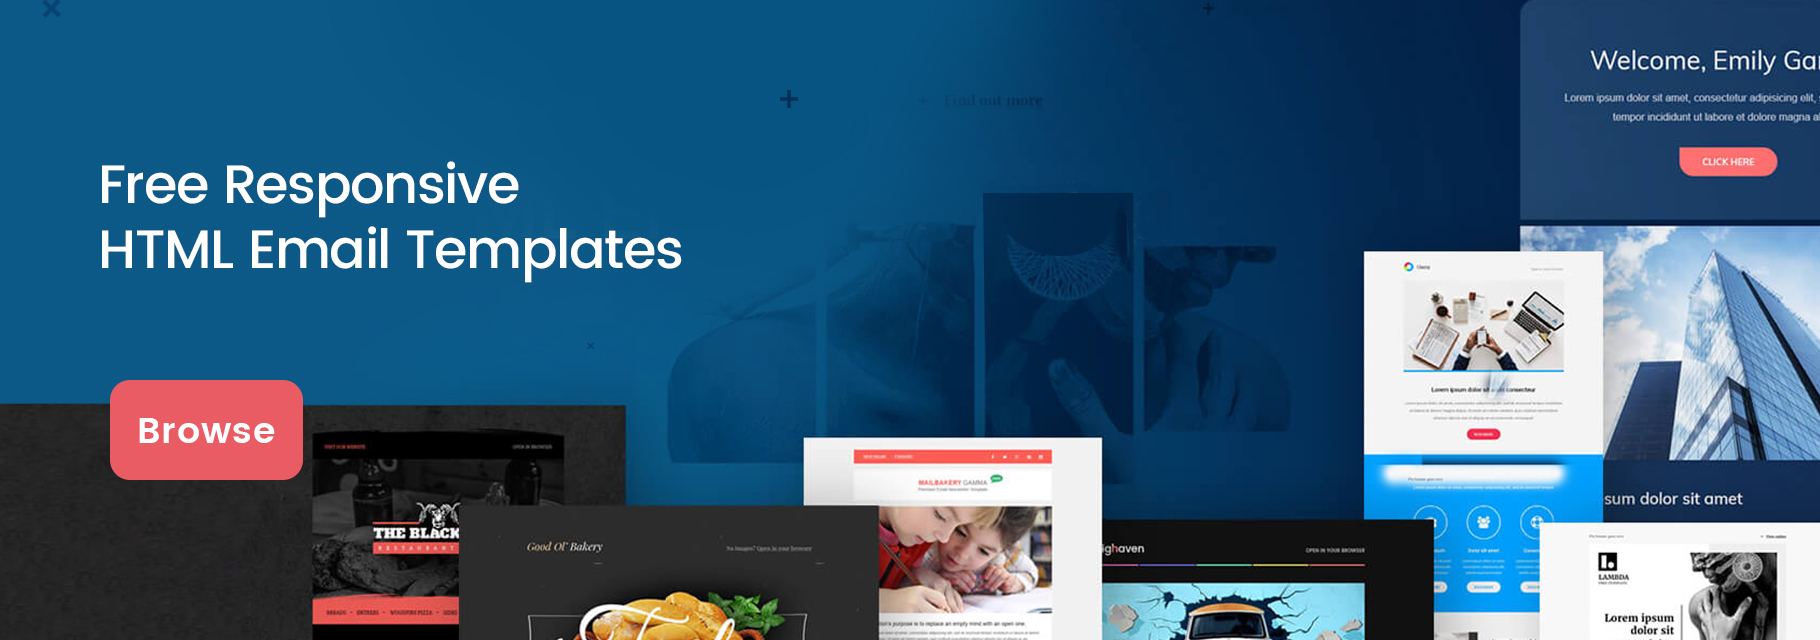 free responsive html email templates banner